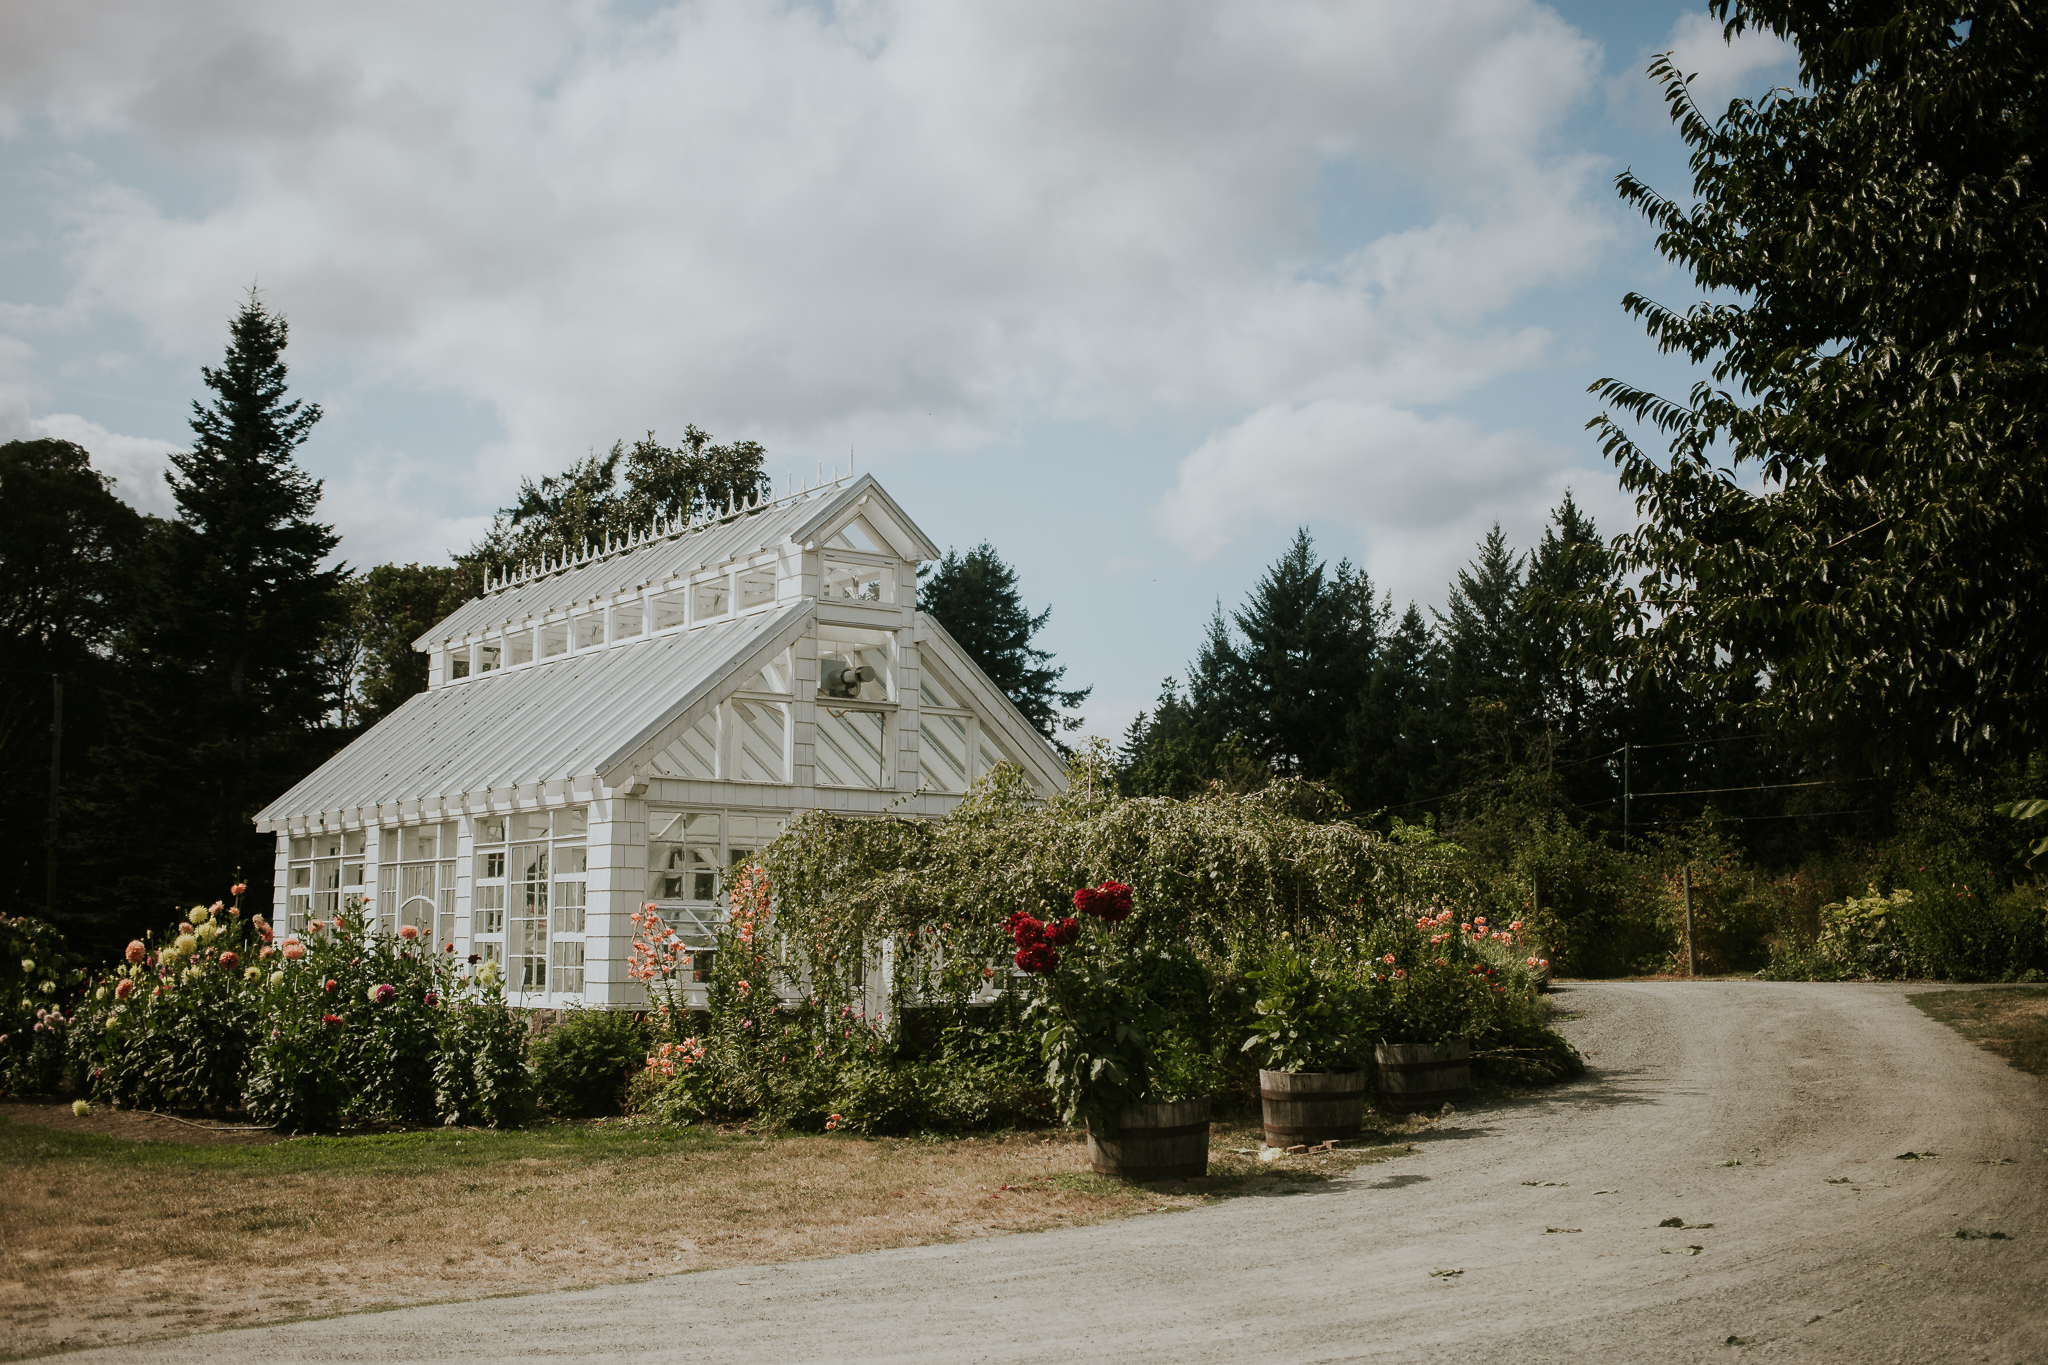 Starling Lane winery summer wedding venue with greenhouse Victoria BC